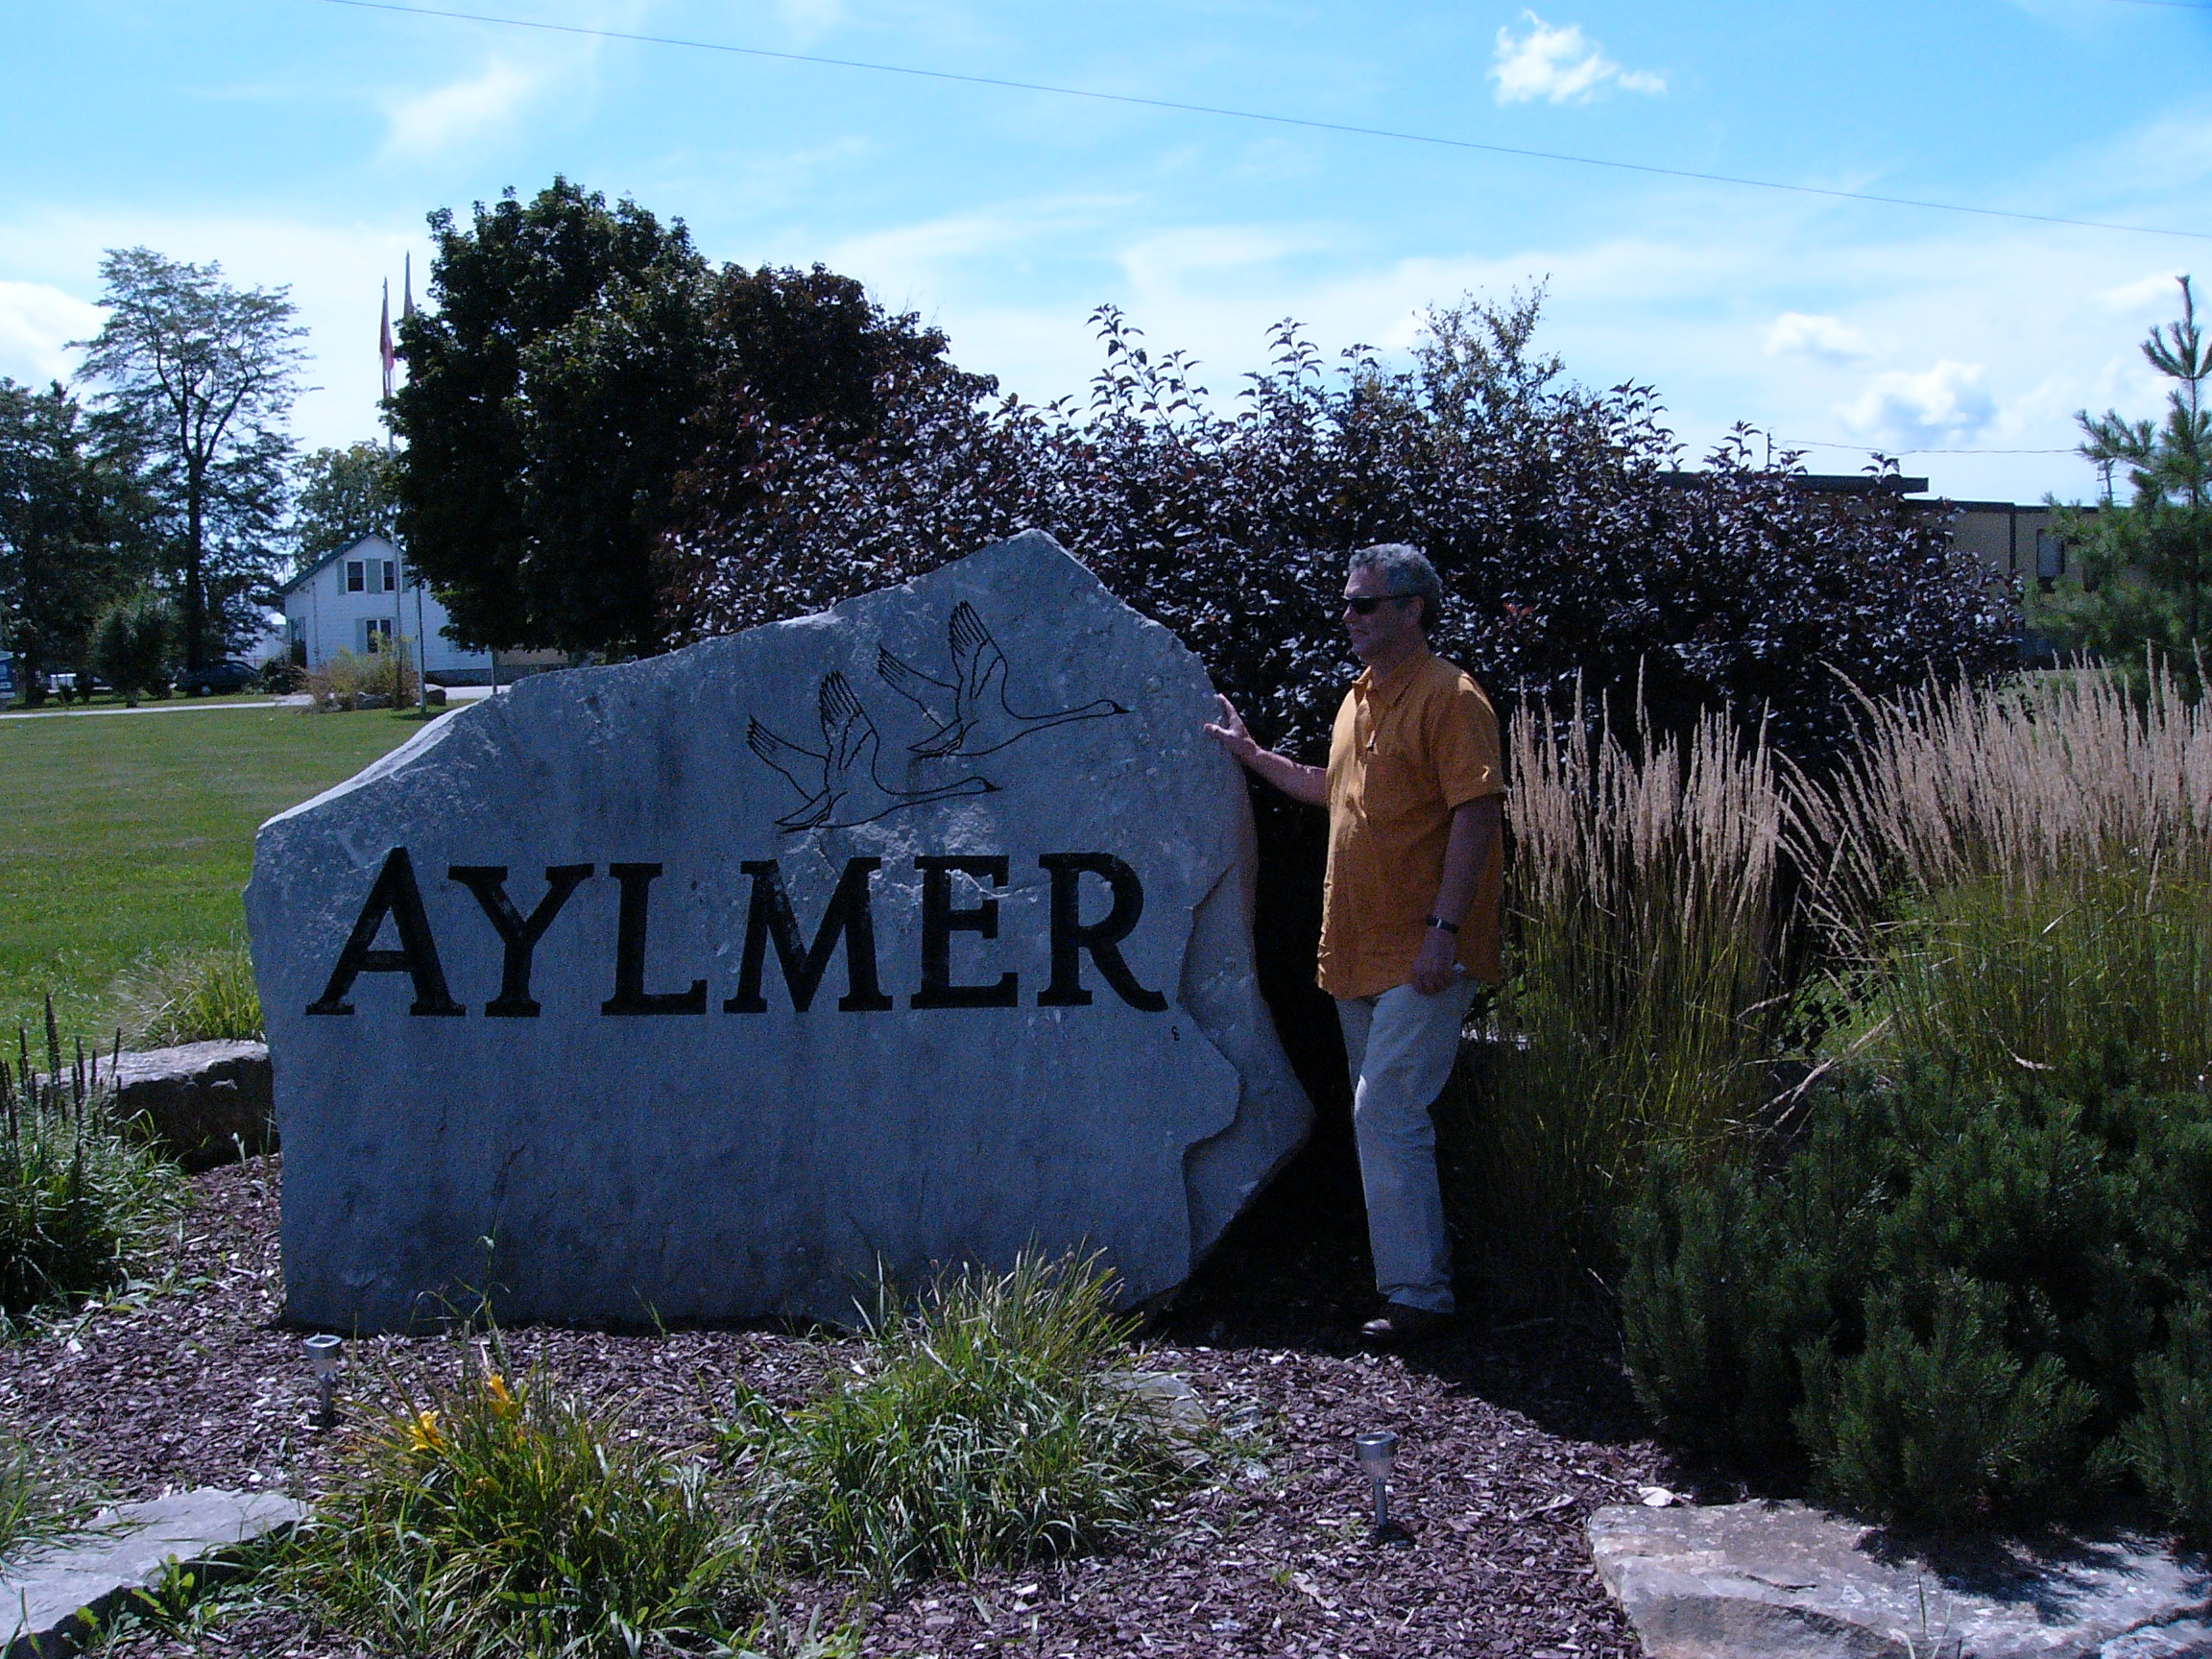 aylmer women Curves is one of the largest chains of fitness centers for women in the world - famous for its 30-minute circuit that works every major muscle group with strength training, cardio, and.